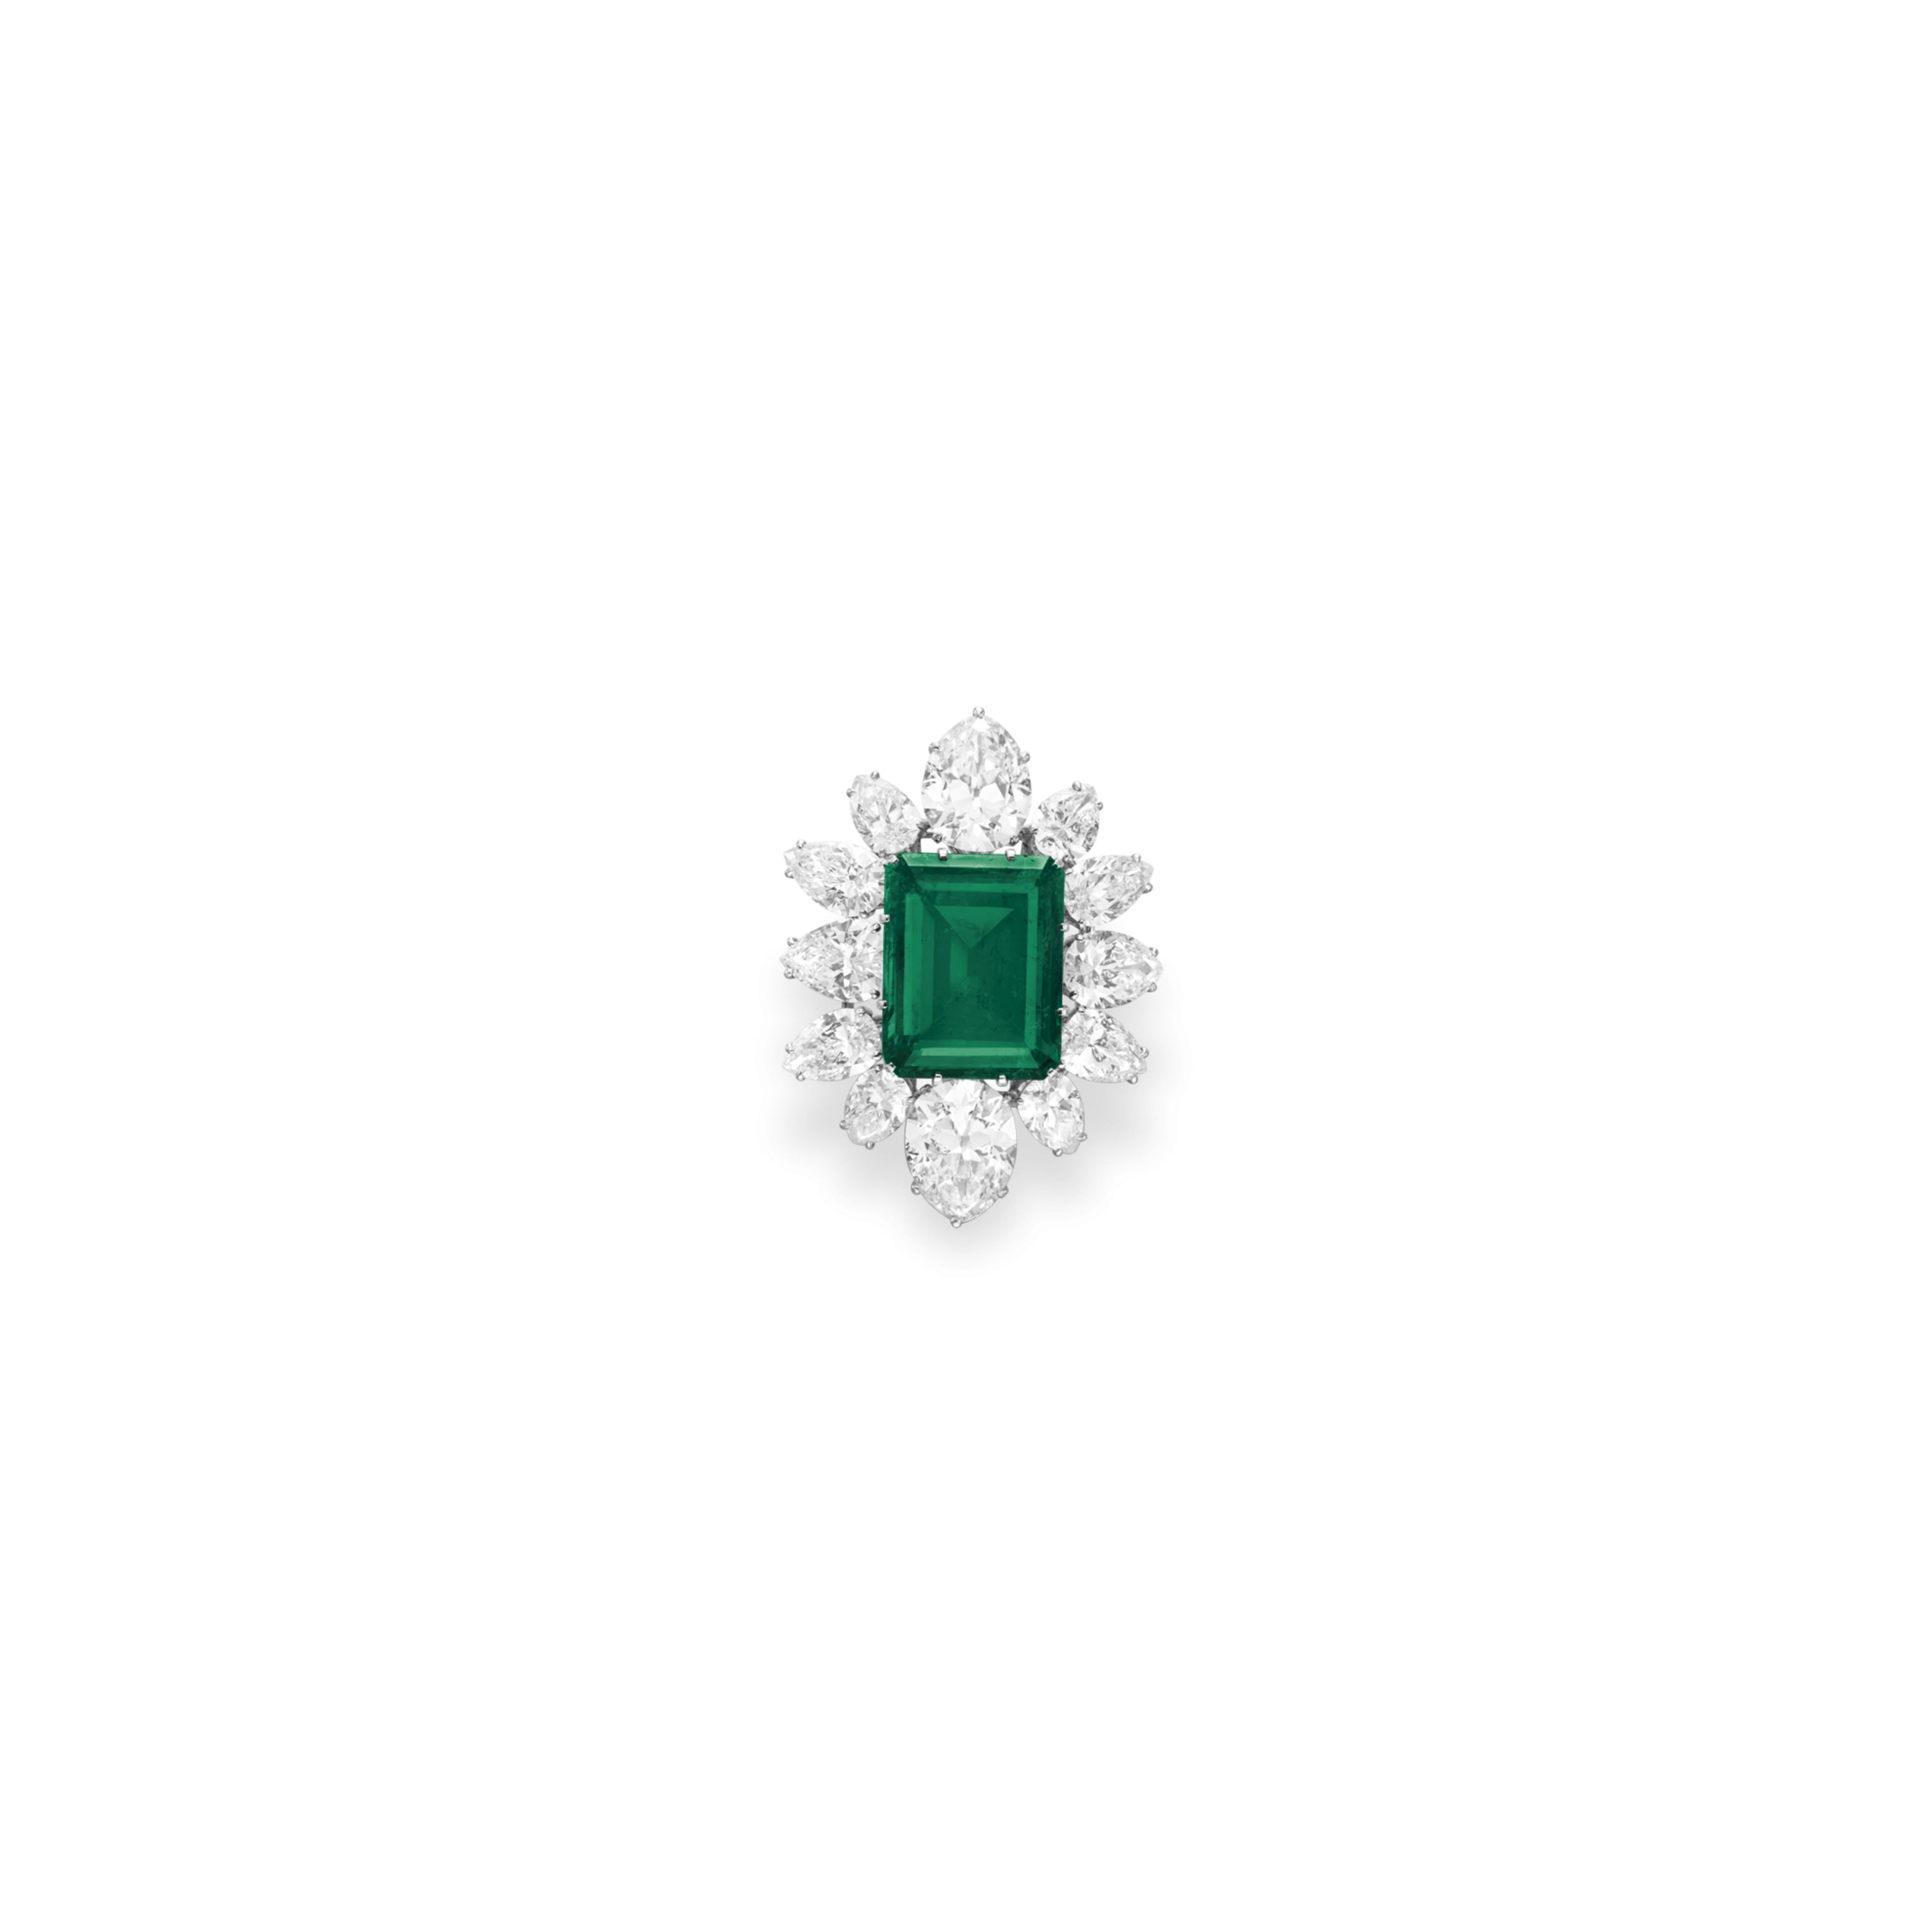 AN EMERALD AND DIAMOND PENDANT BROOCH, BY BVLGARI